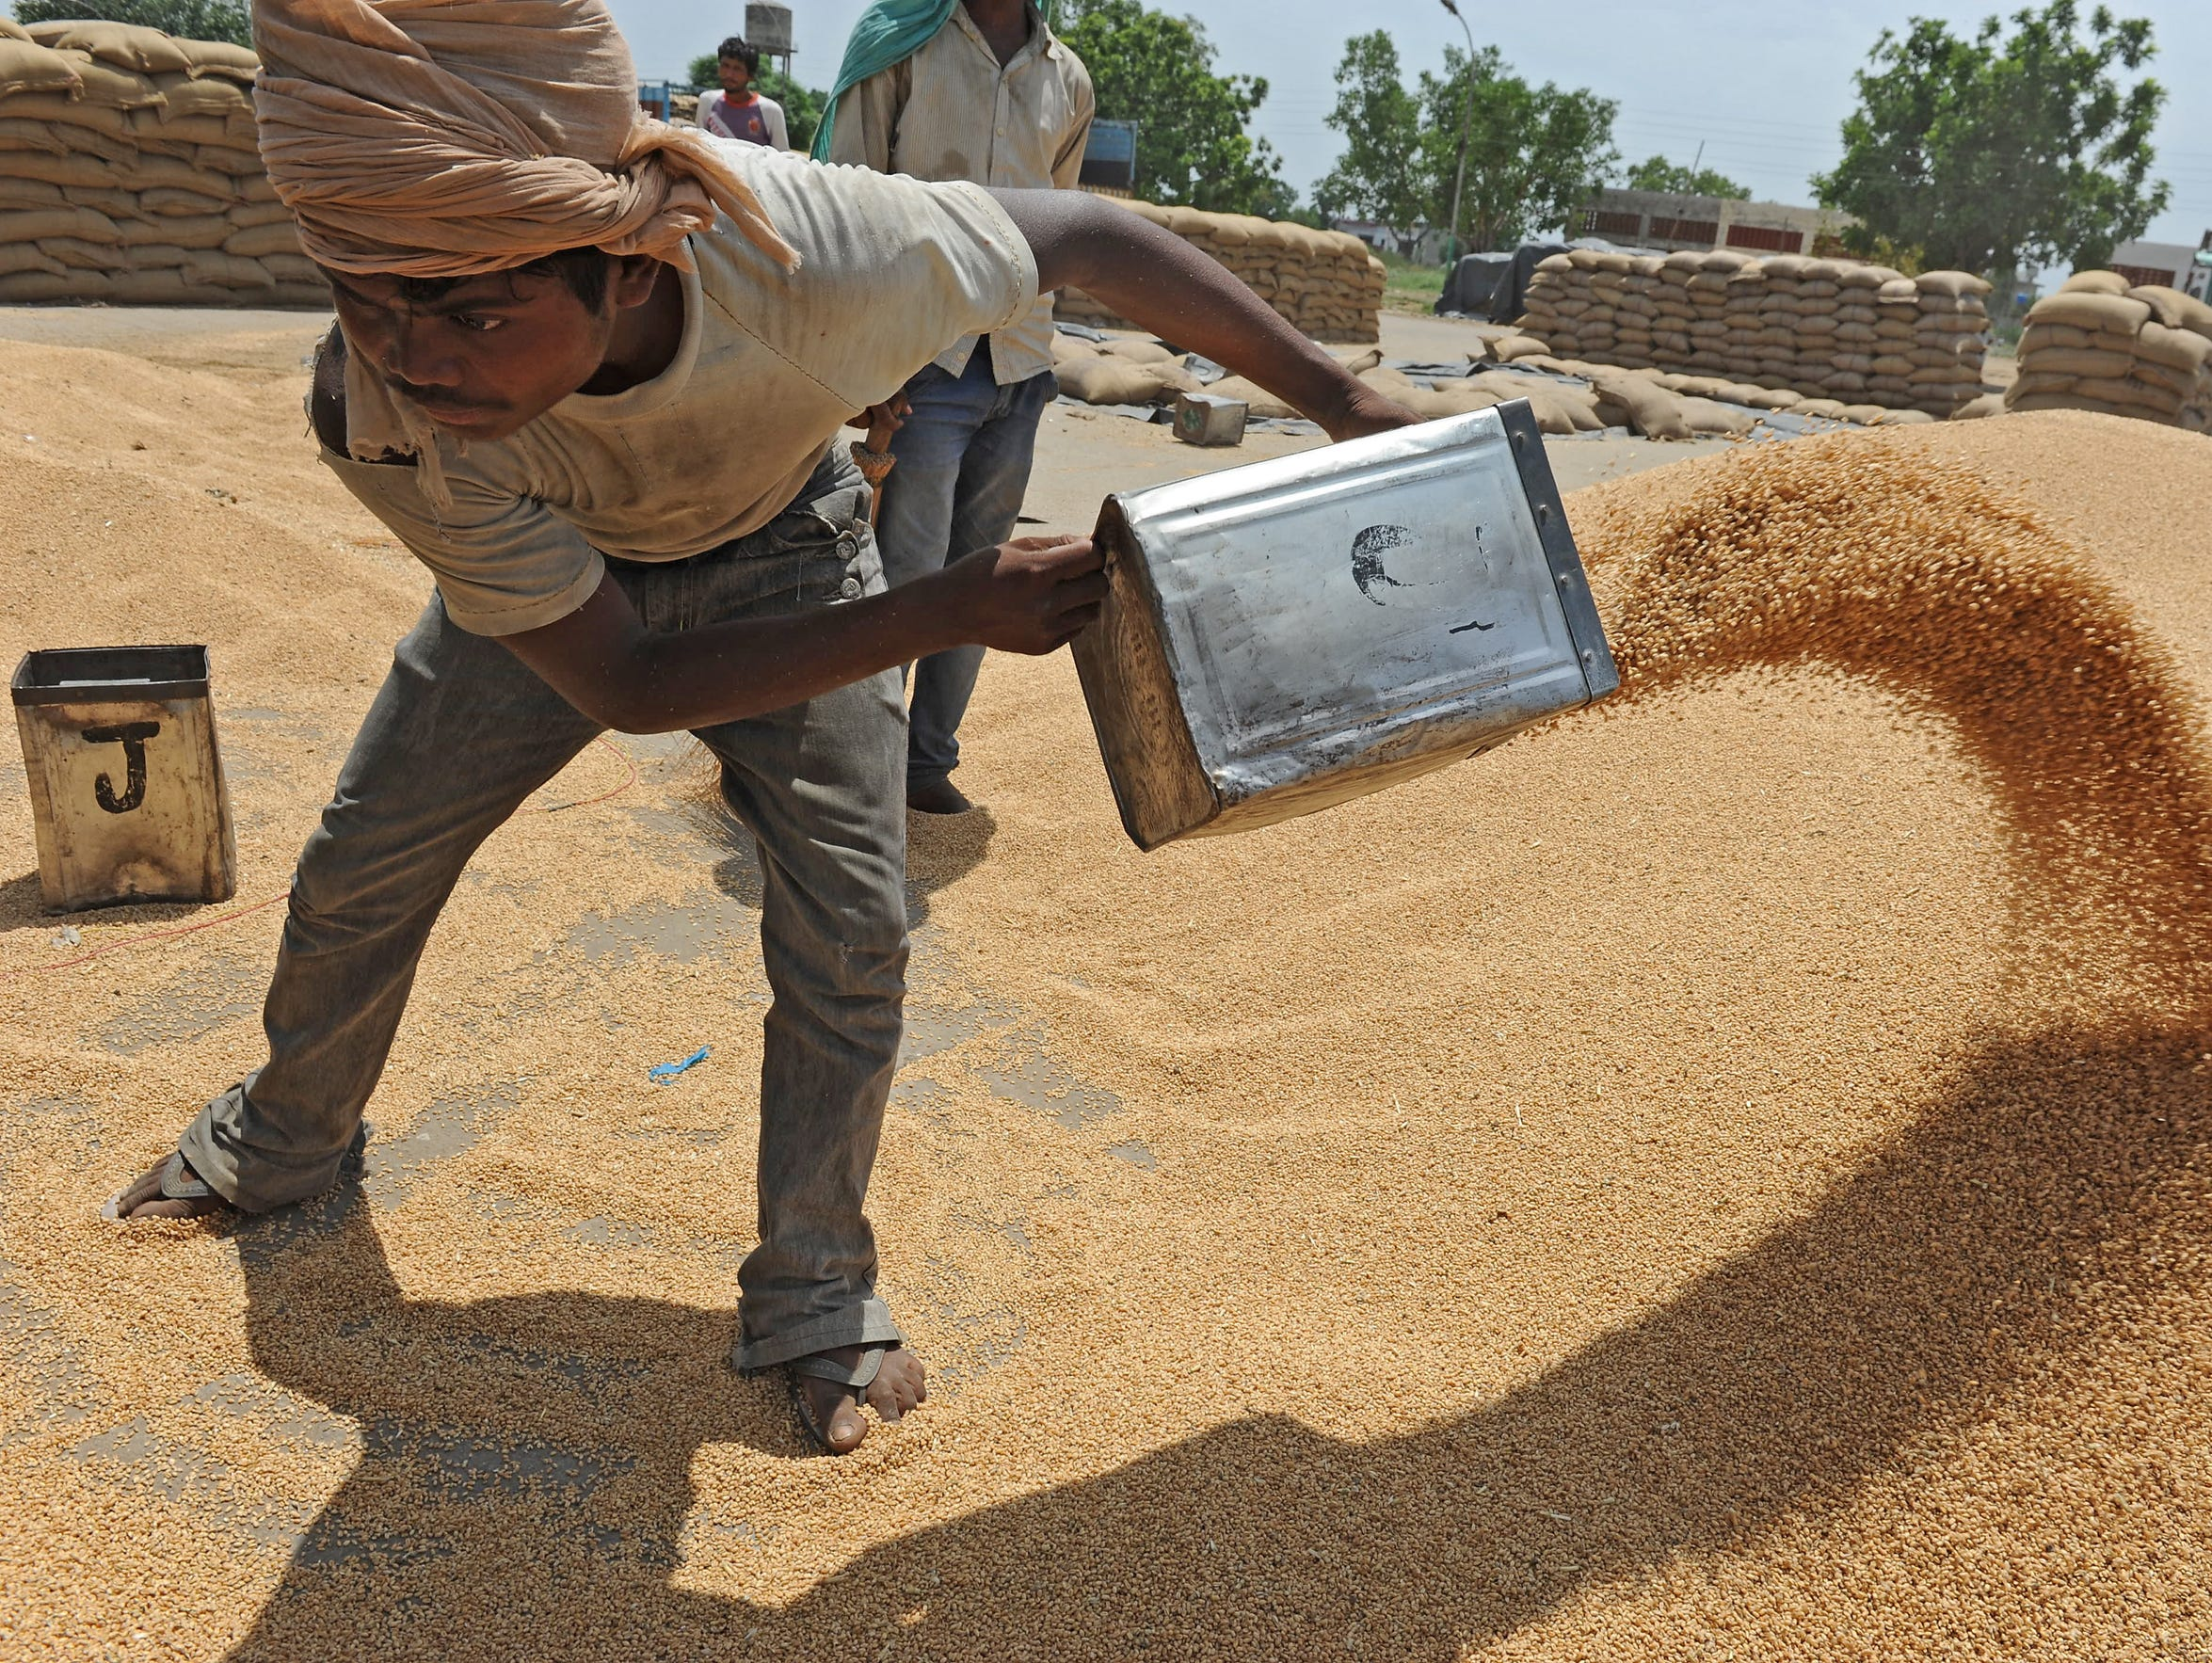 Chottelal Sural tosses wheat into a pile as workers